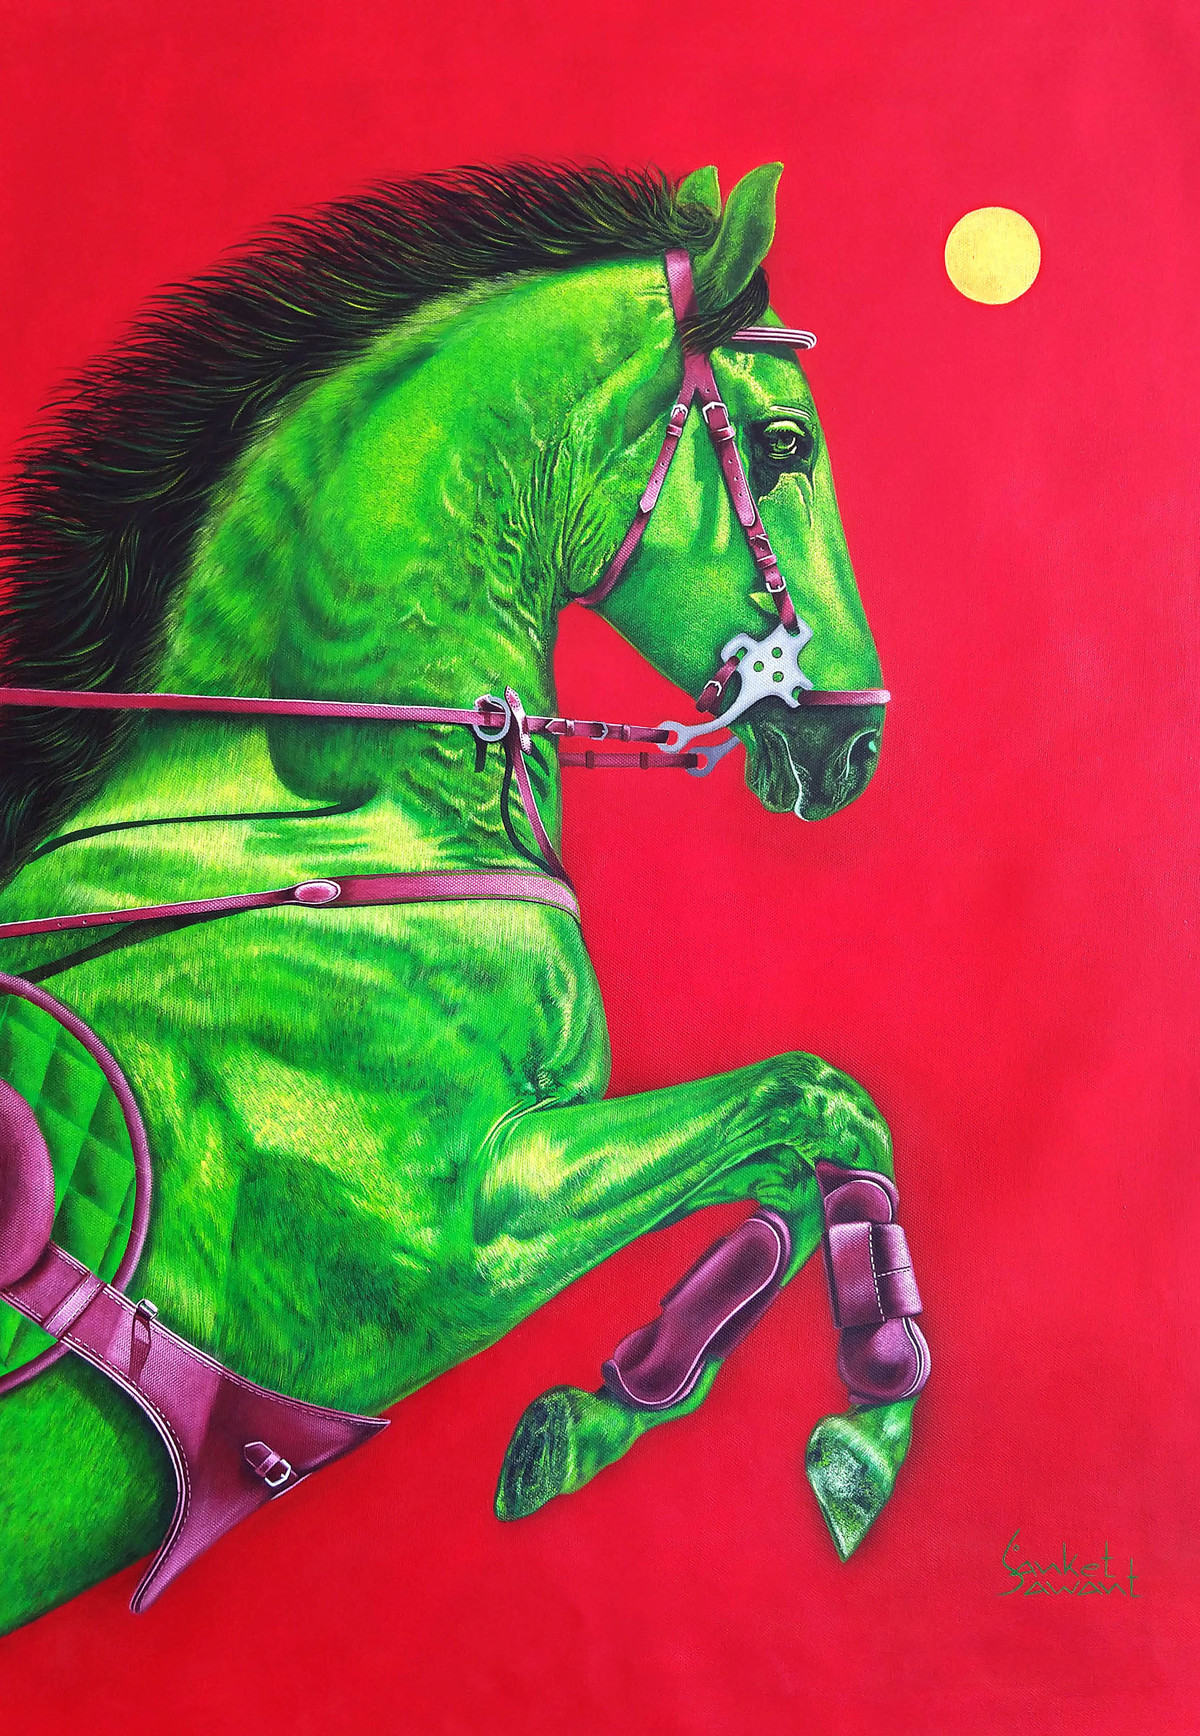 Unstoppable.... by sanket sawant, Expressionism Painting, Acrylic on Canvas, Alizarin Crimson color